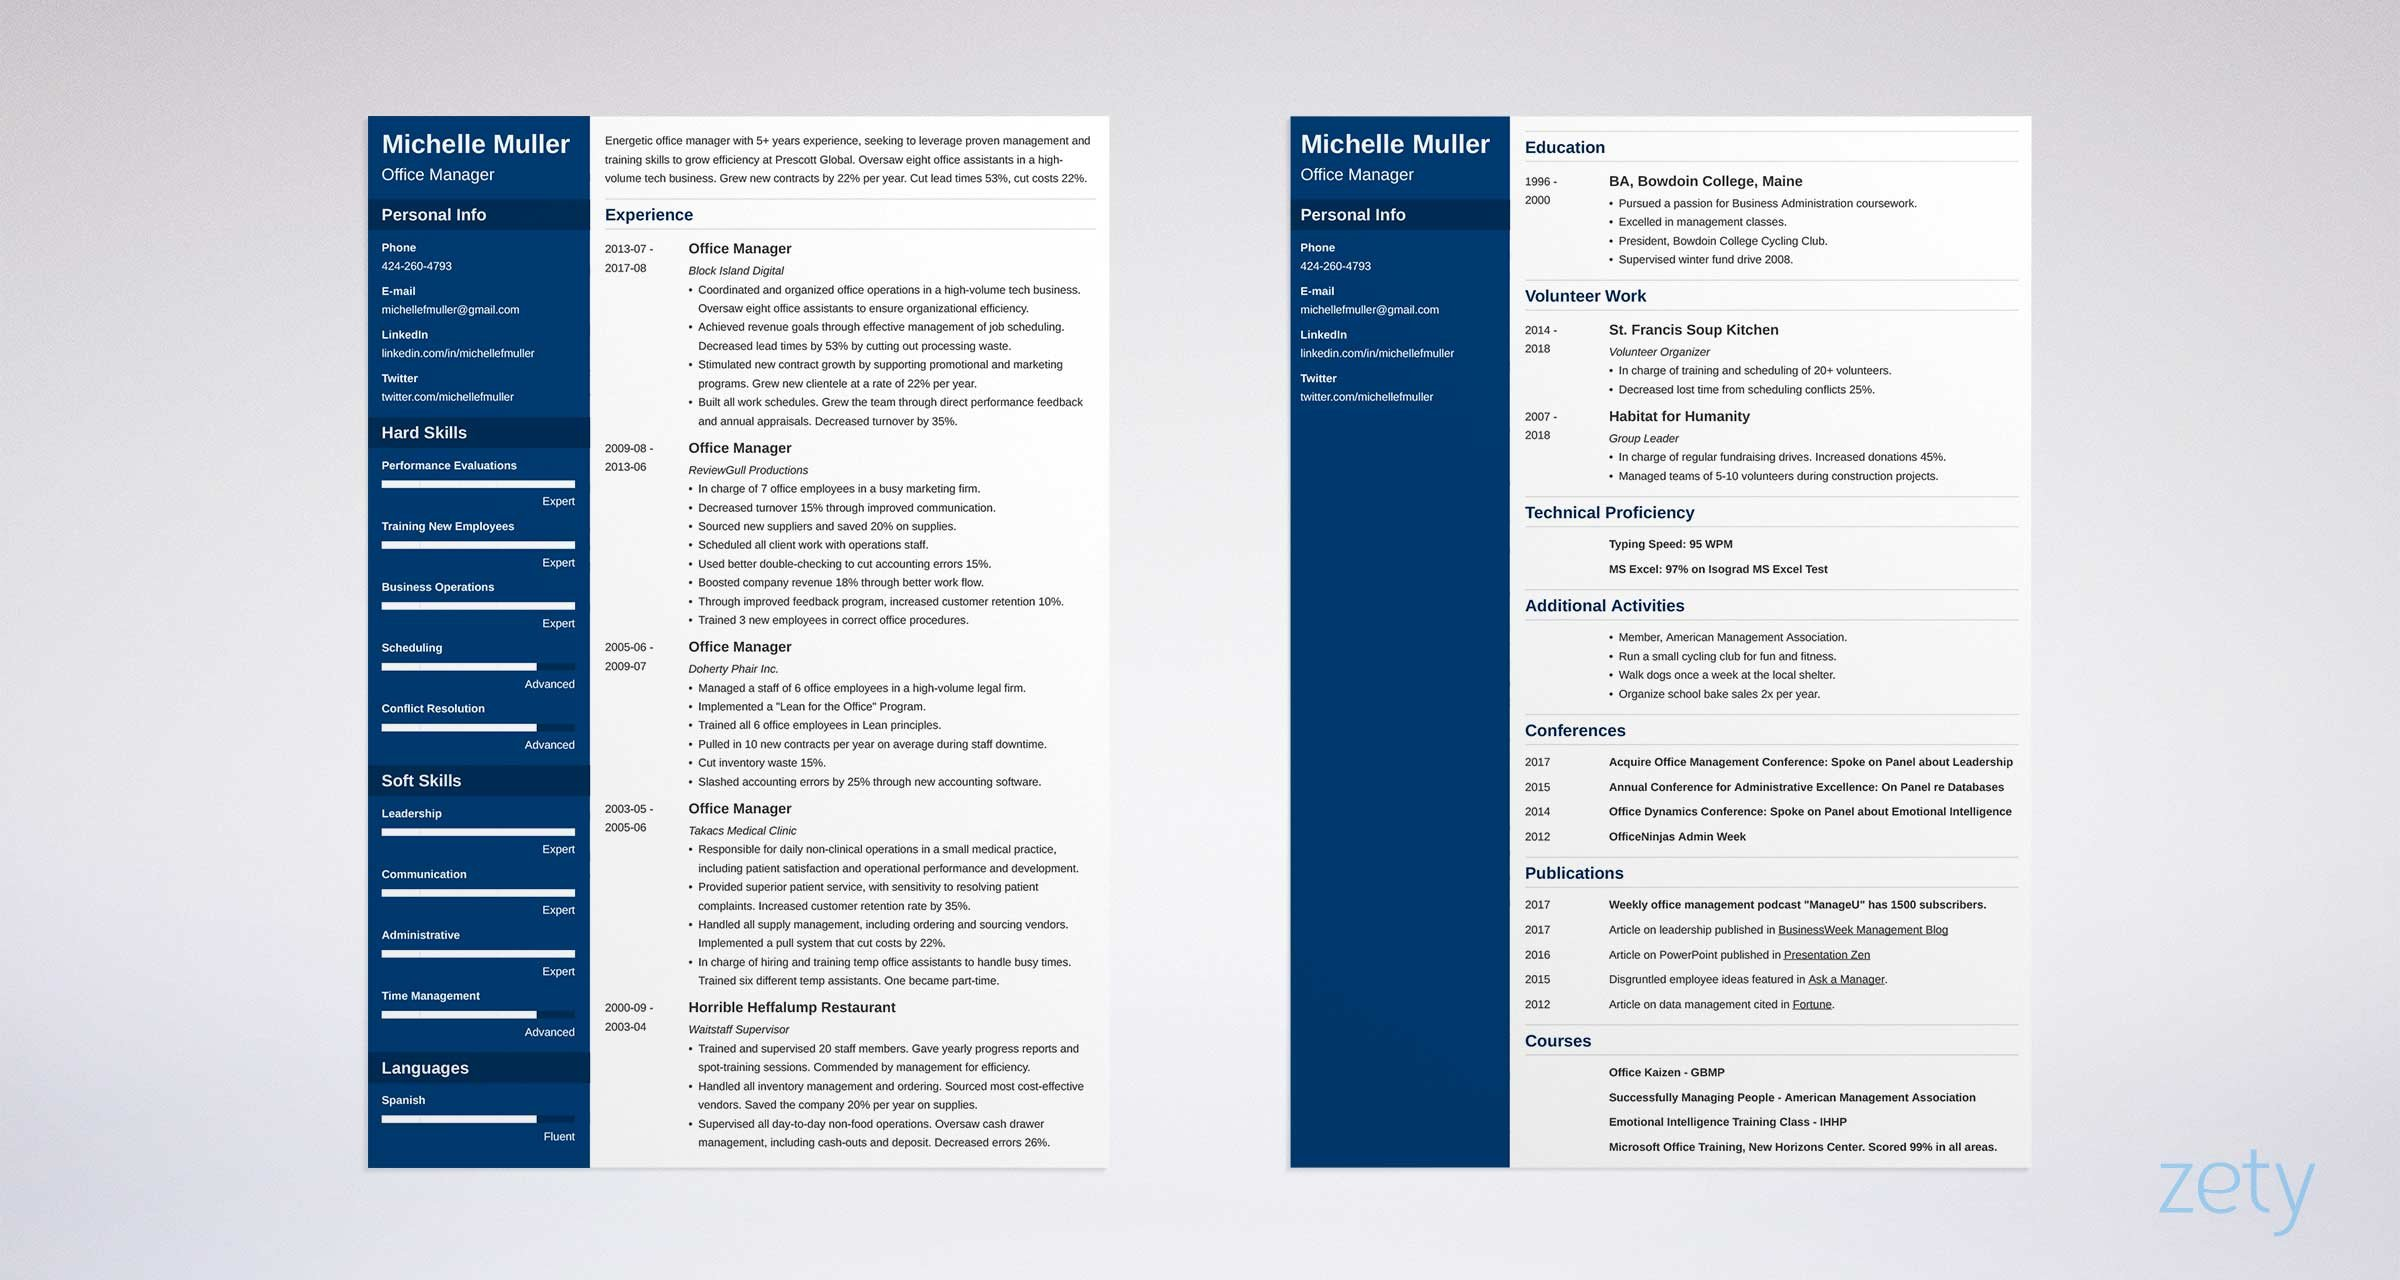 resume it crush your chances format tips best two self descriptive words for seo Resume Best Two Page Resume Format